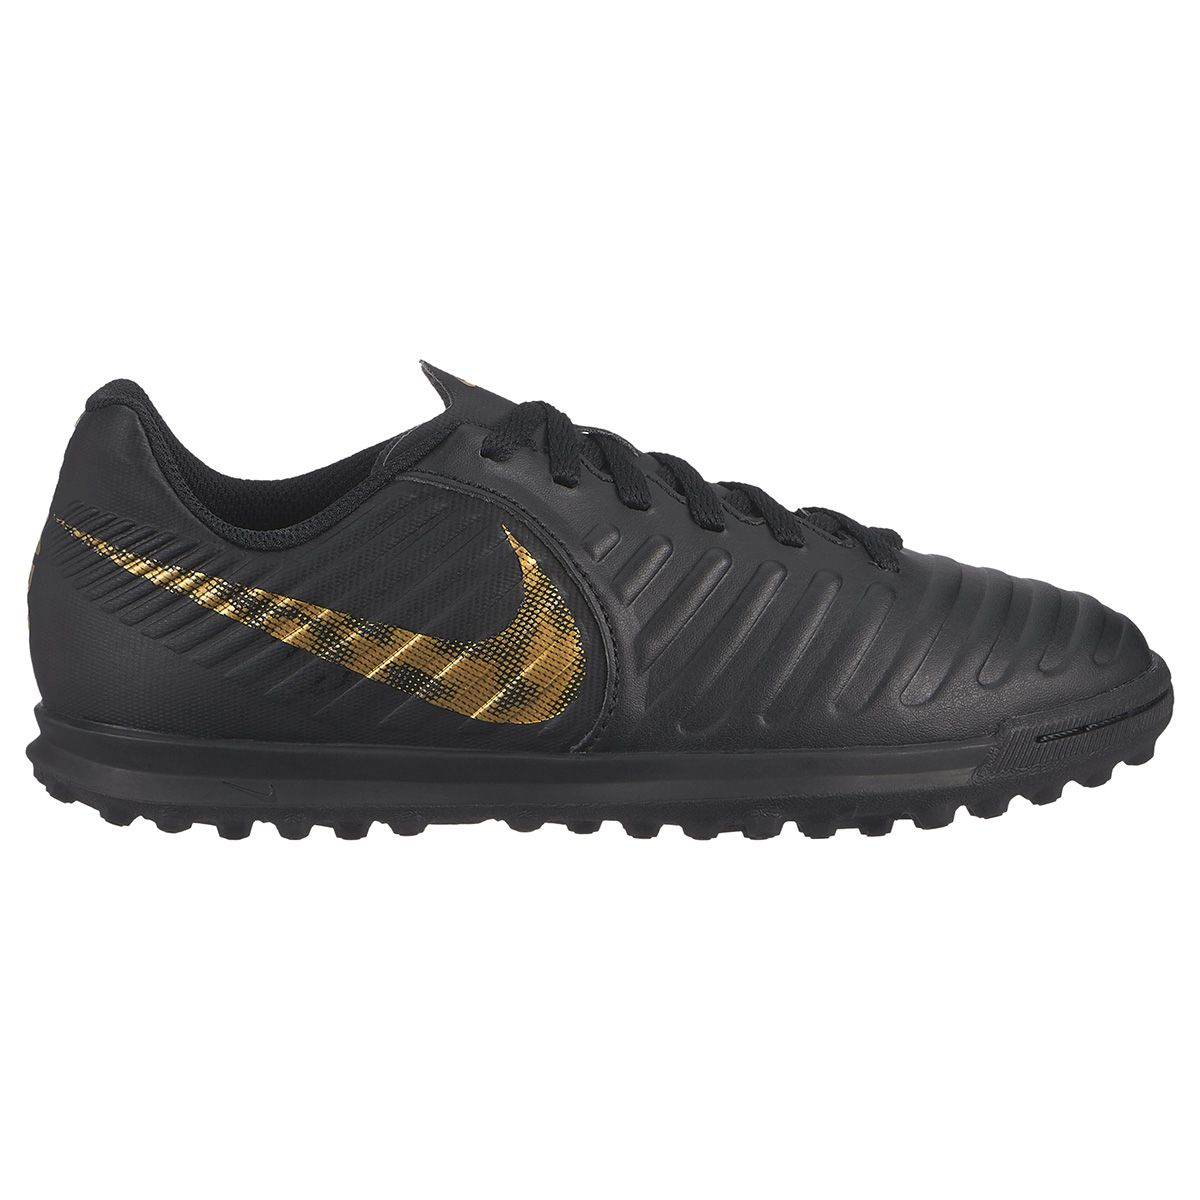 Chuteira Nike Society Legend 7 Club TF - Adulto - Unissex- Preto/Dourado